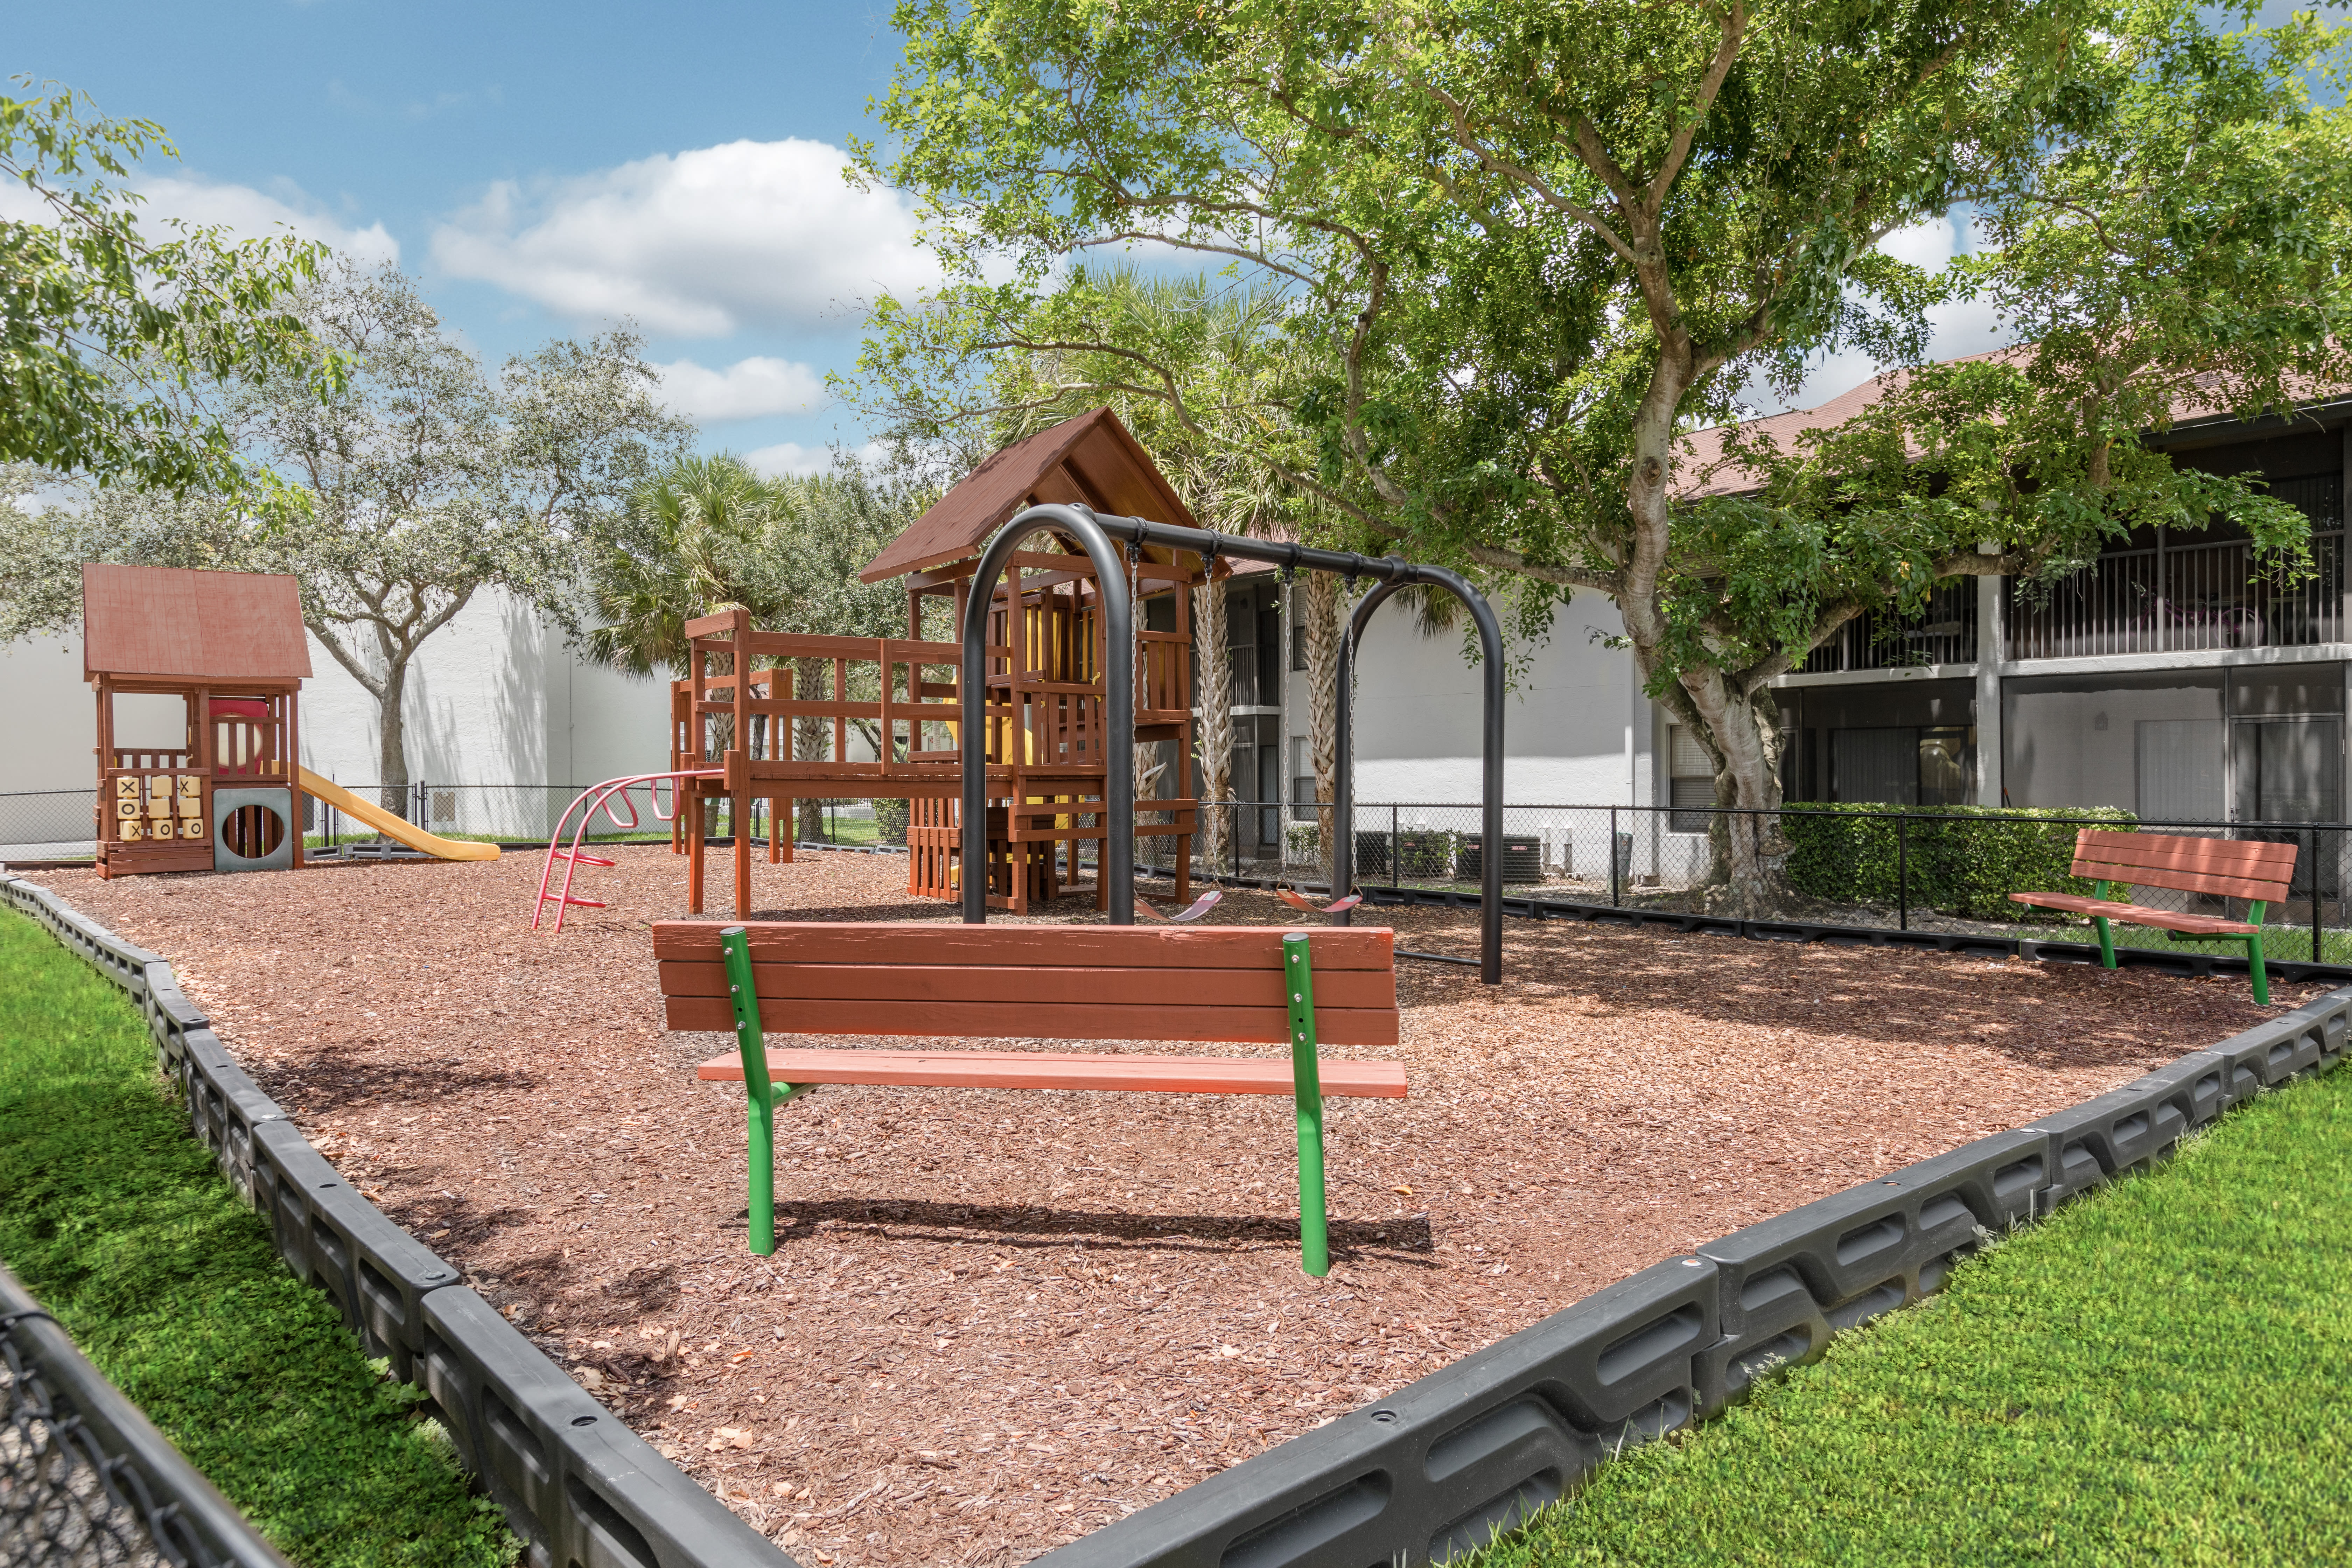 View virtual tour for the playground at Siena Apartments in Plantation, Florida